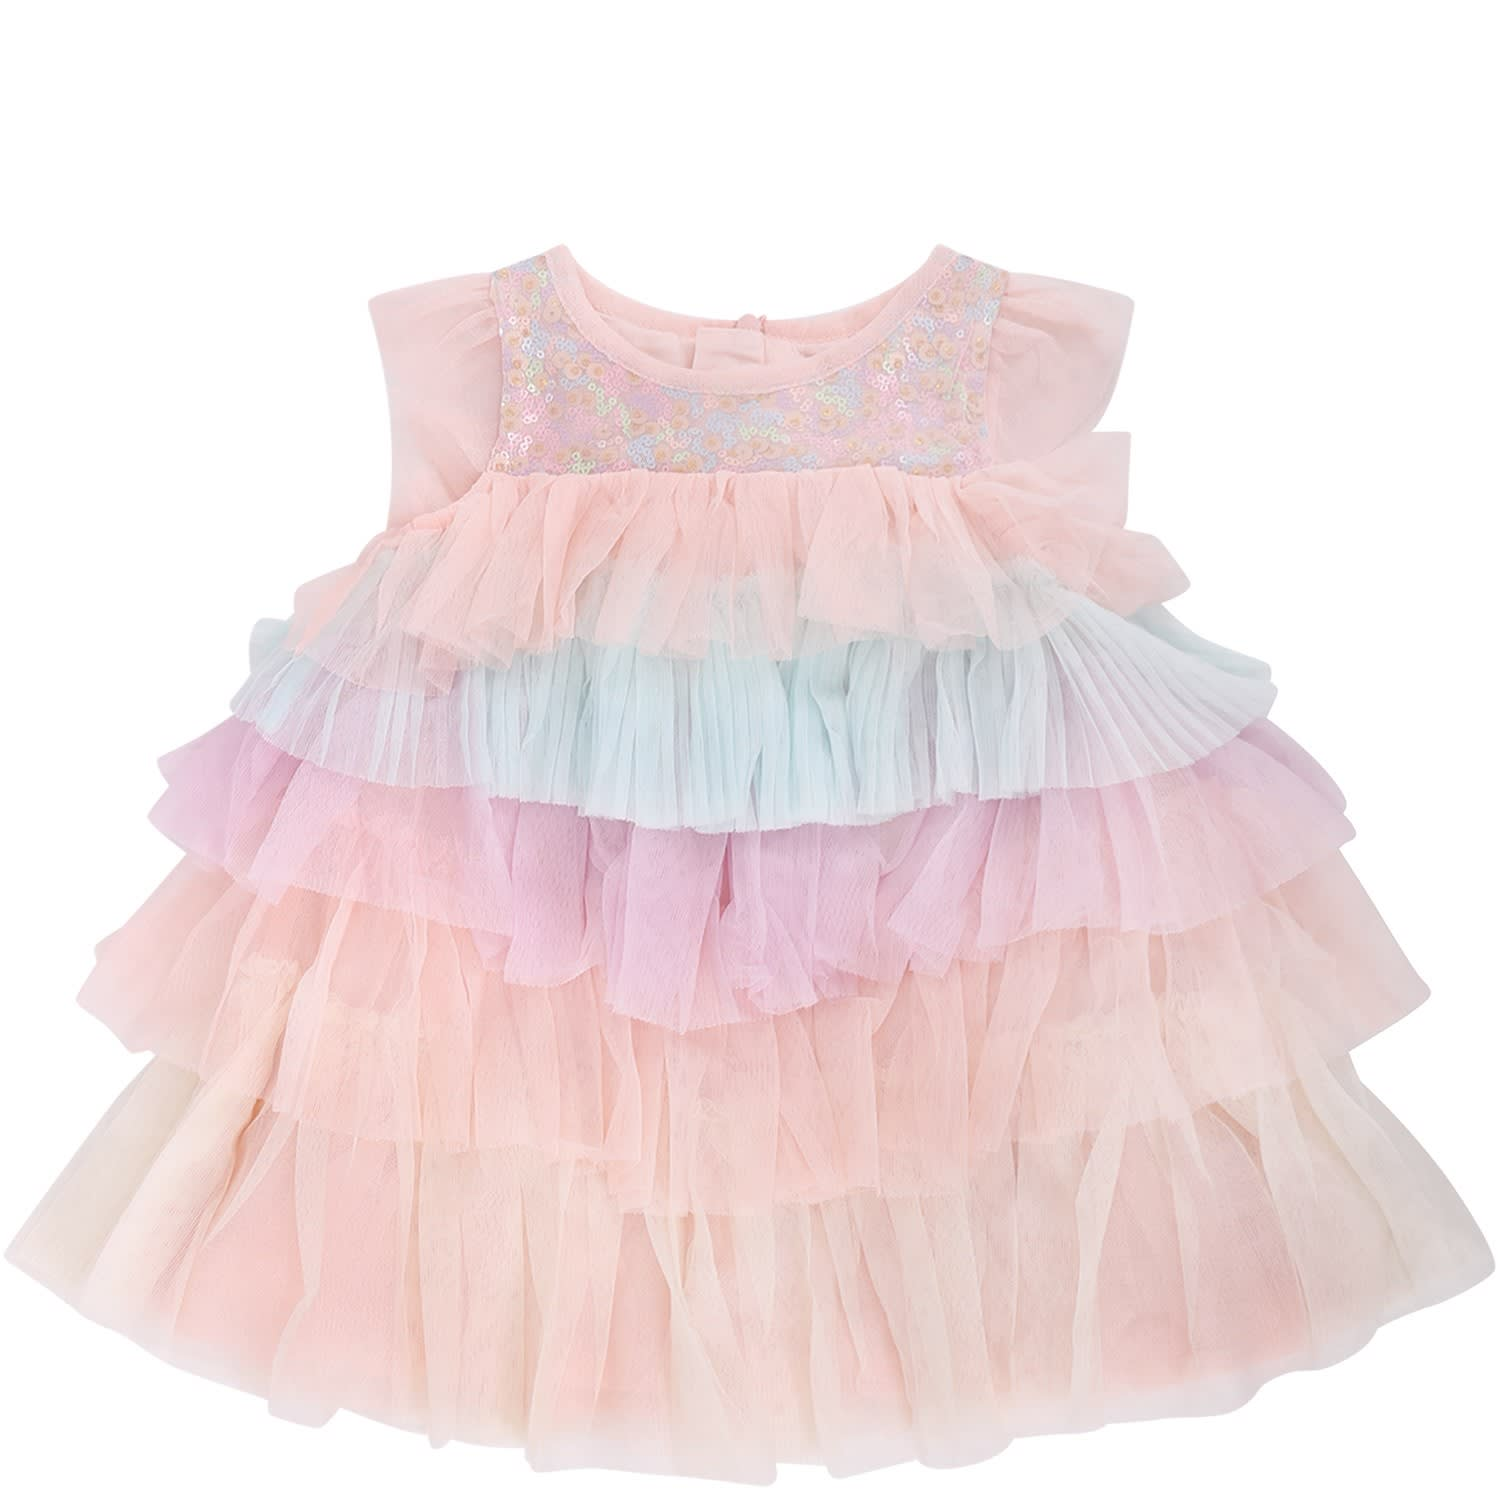 Billieblush Pink Babygirl Dress With Colorful Flounces